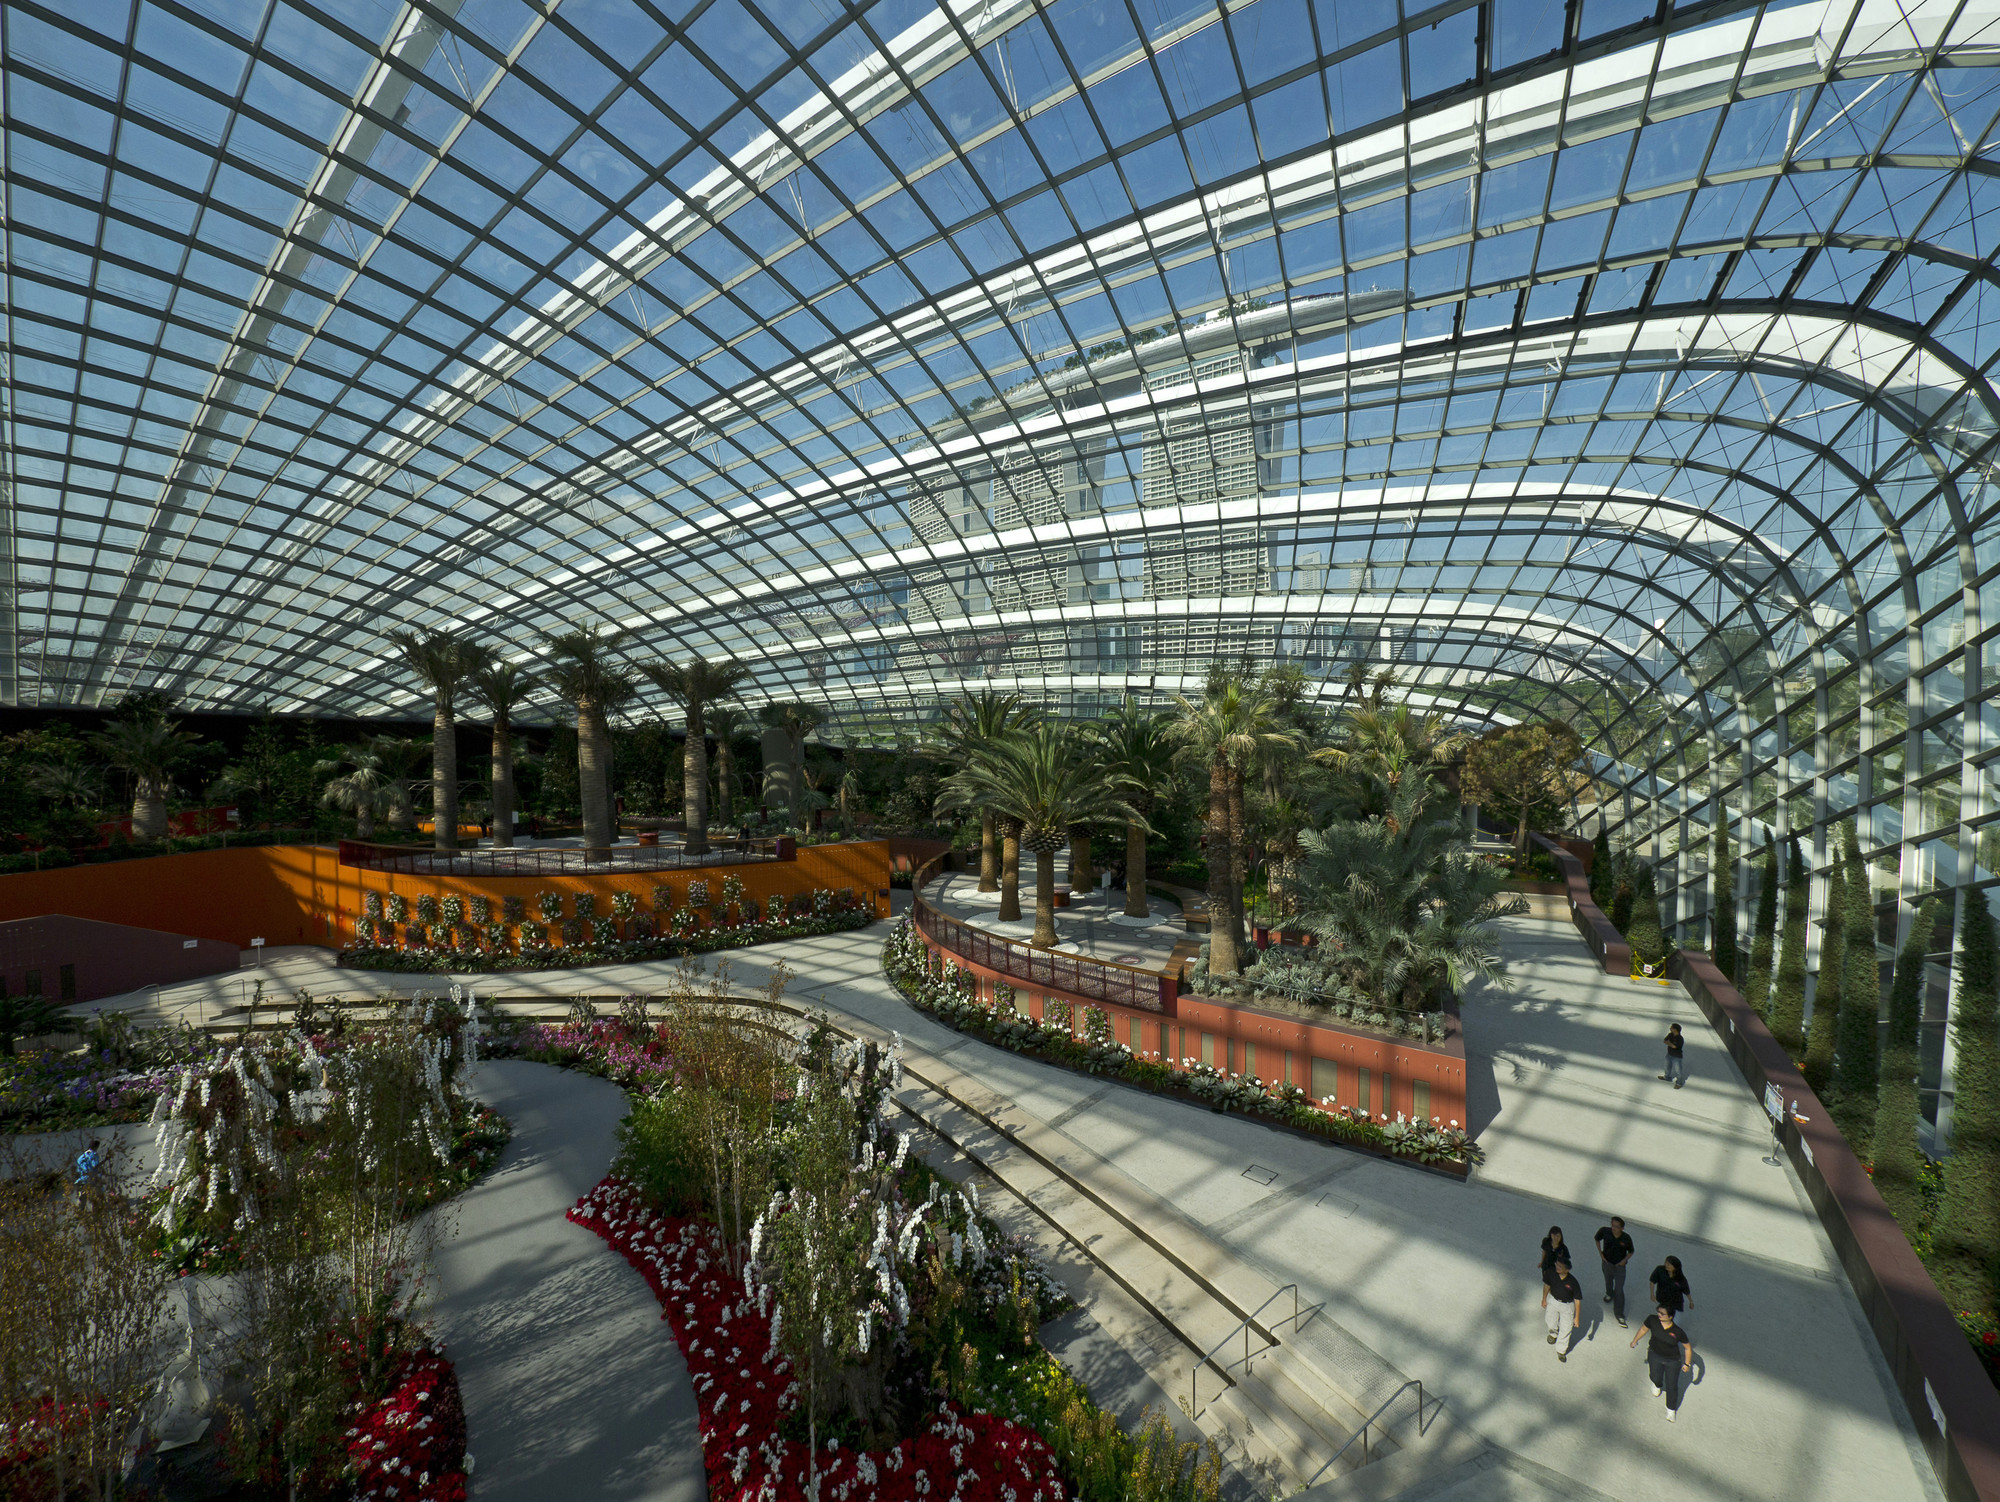 cooled conservatories at gardens by the bay wilkinson eyre architects archdaily